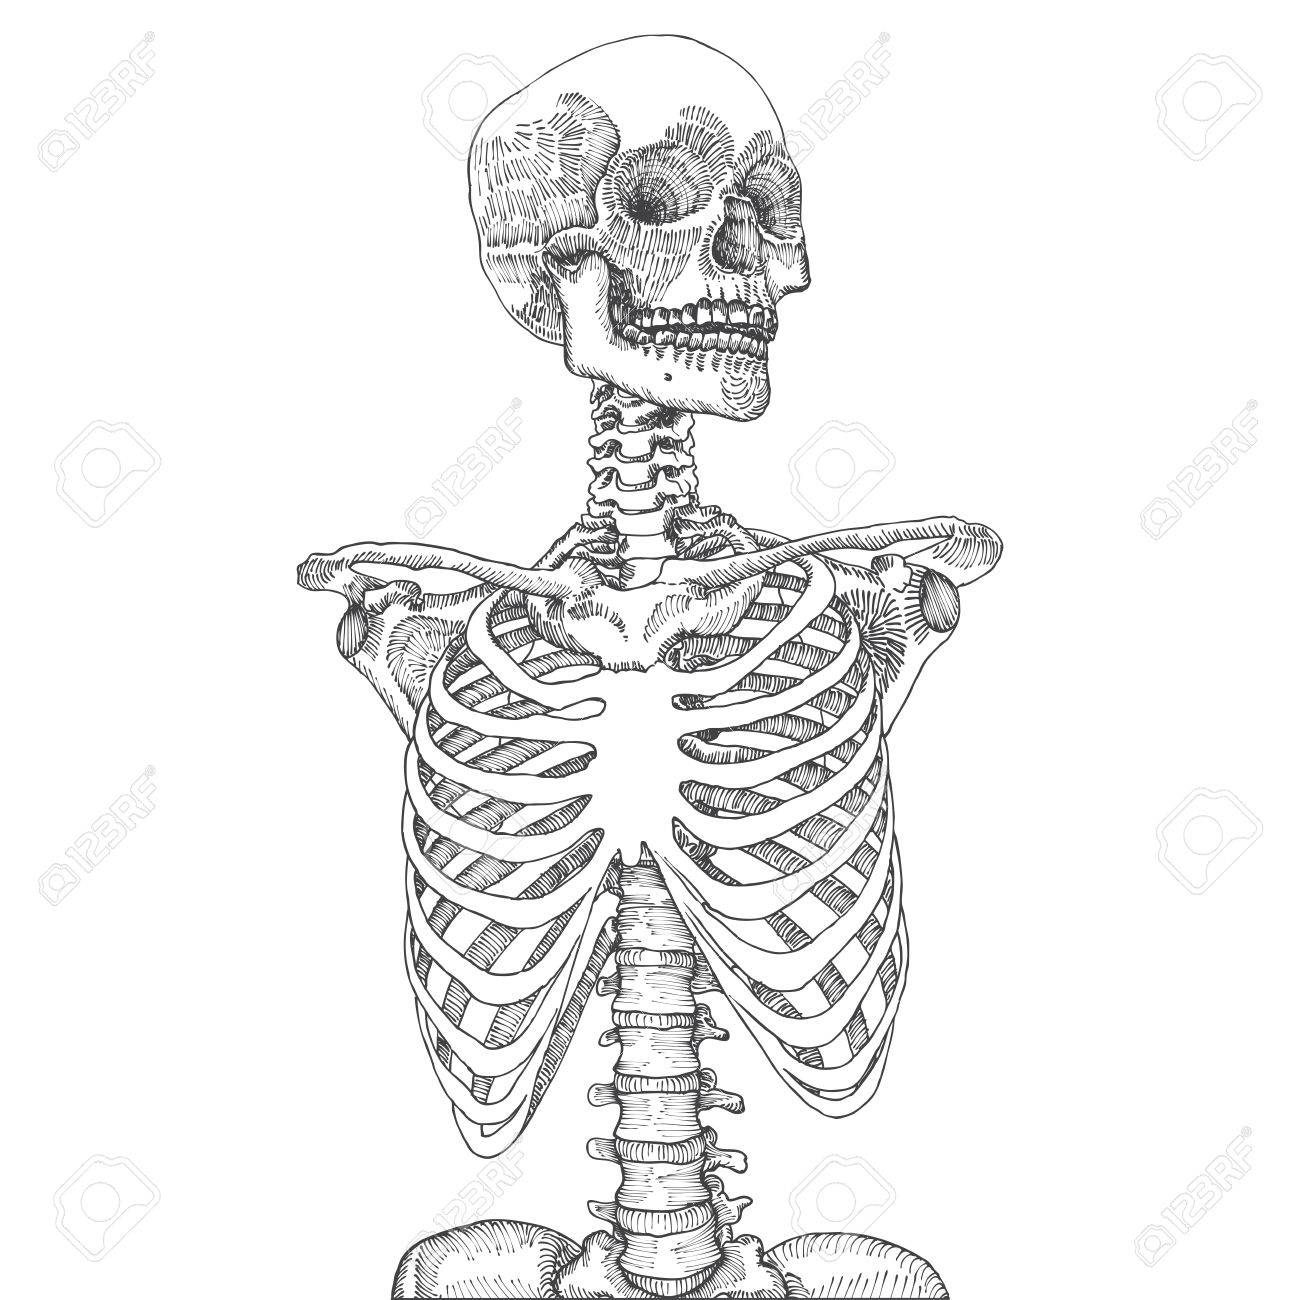 1300x1300 Hand Drawn Anatomical Medical Human Ribcage With Skull. On White